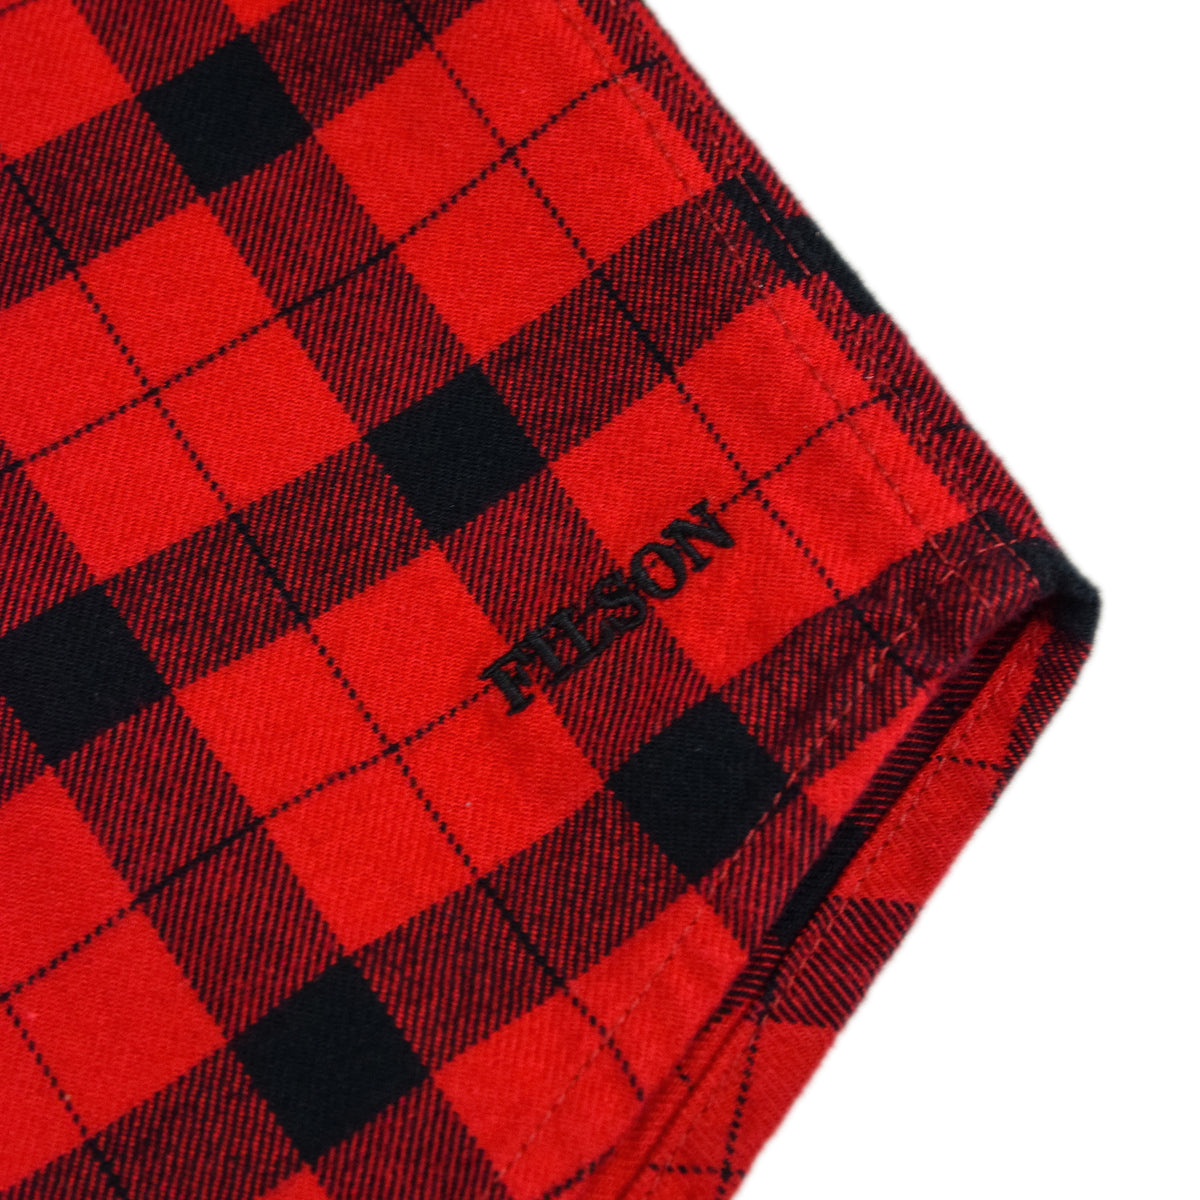 Filson Alaskan Guide Cotton Flannel Shirt Red/Black Embroidery